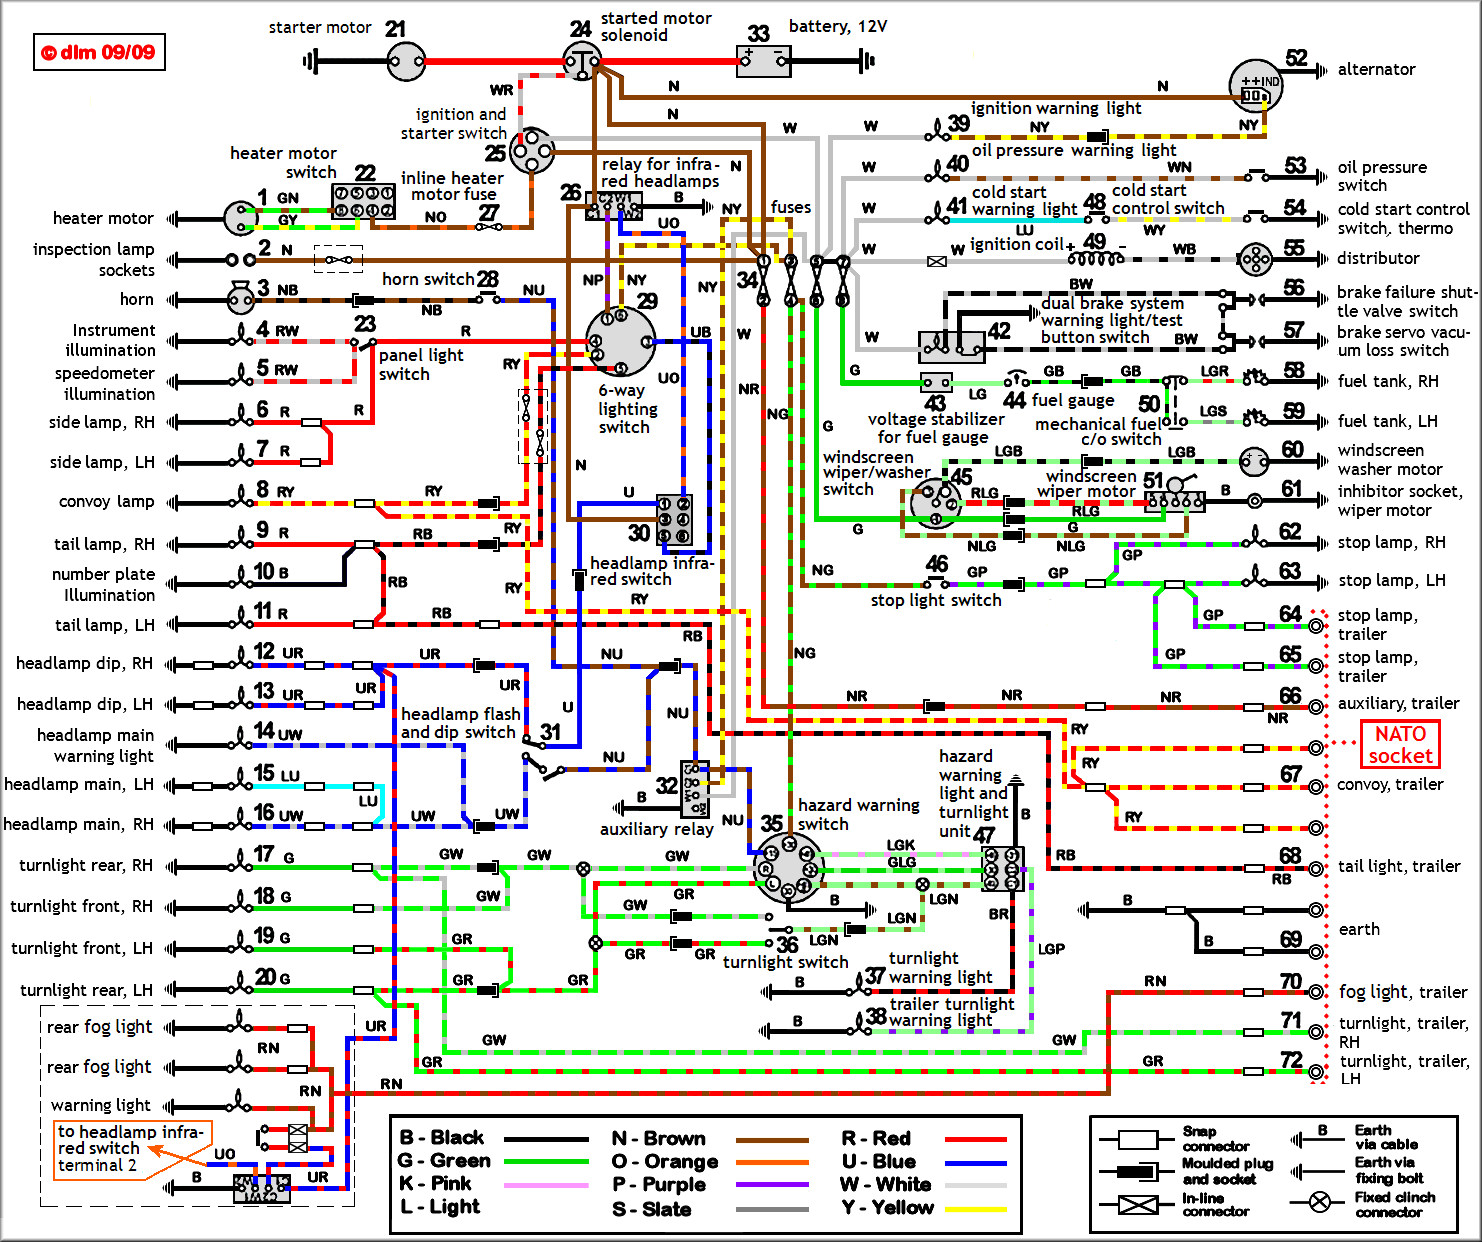 Wiring Diagram New 300tdi wiring diagram chinese 110 atv wiring diagram \u2022 free wiring 300tdi discovery as10 wiring diagram at webbmarketing.co